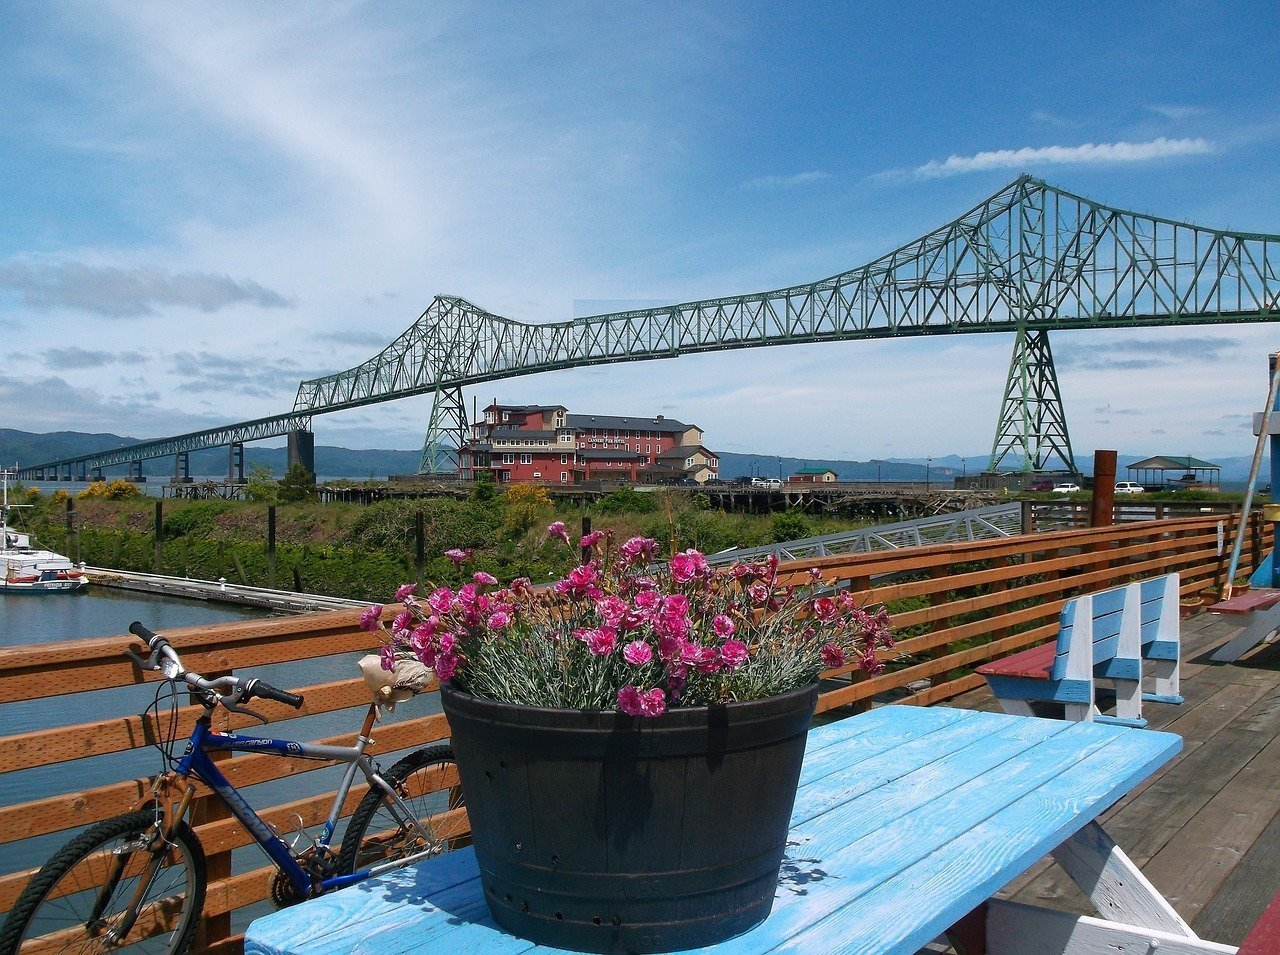 View of the Astoria–Megler Bridge with flowers and bike